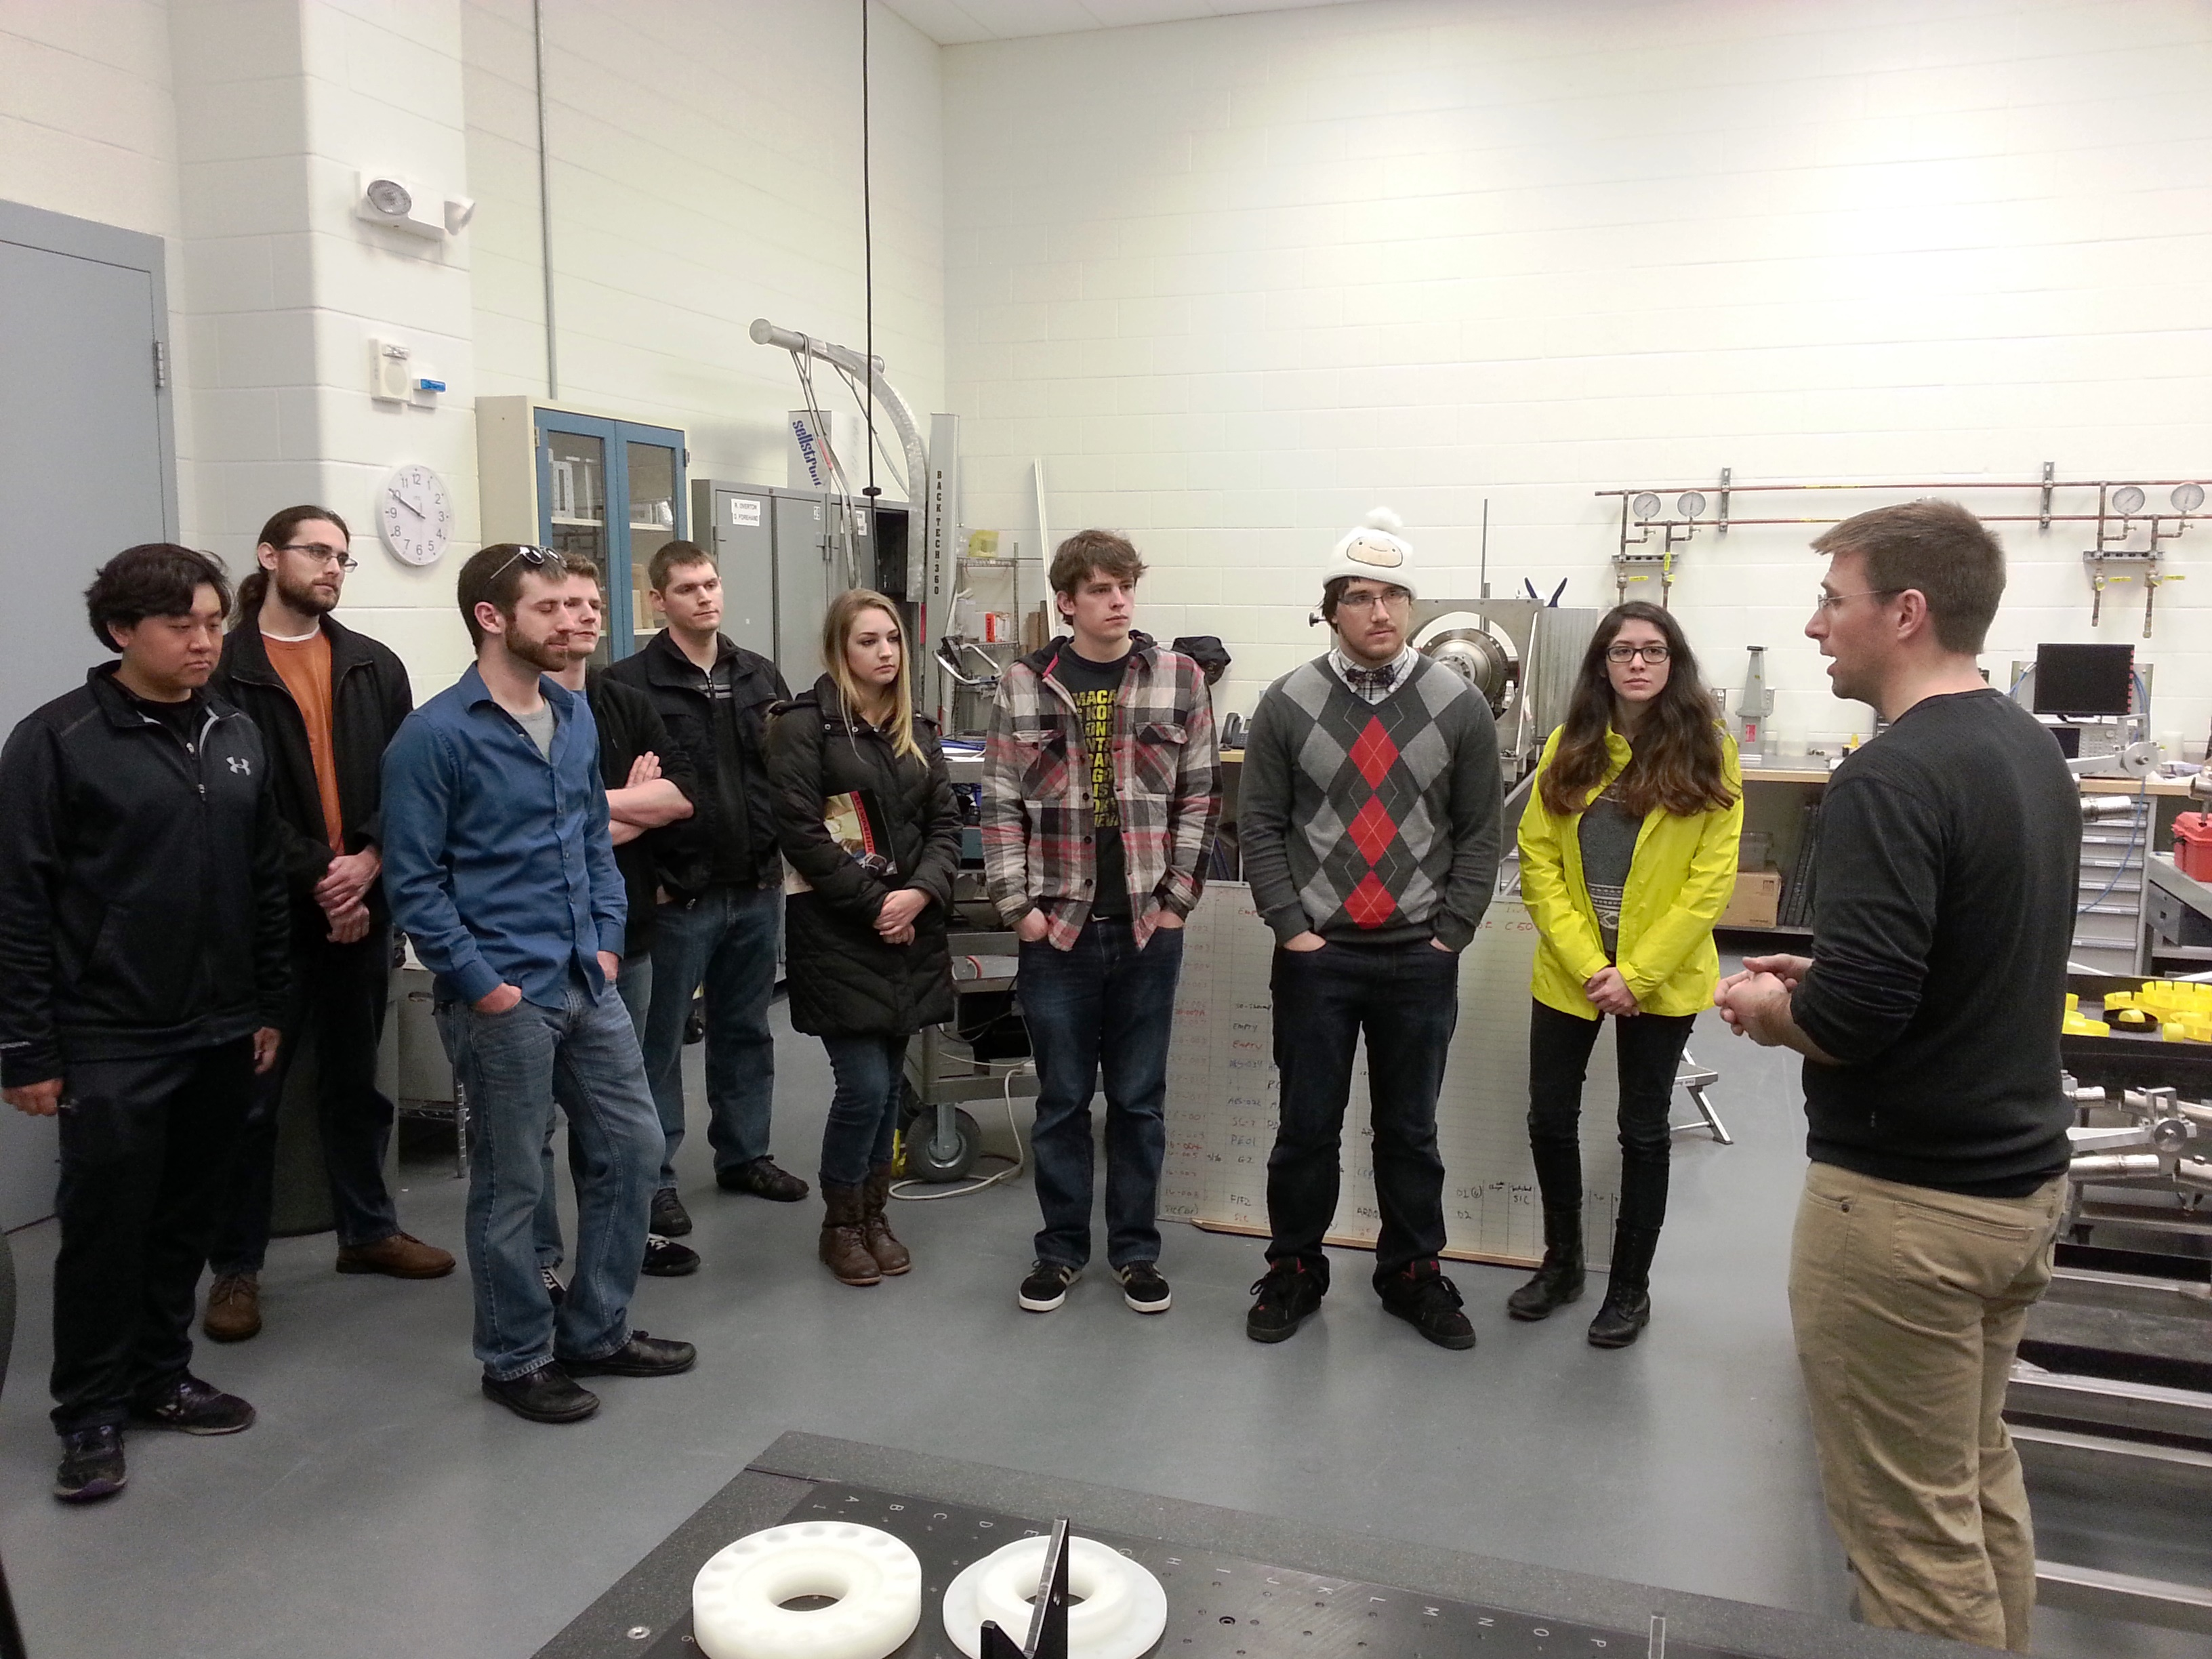 Ari Palczewski speaks with Temple Physics Society students during a tour of the lab in March 2015.